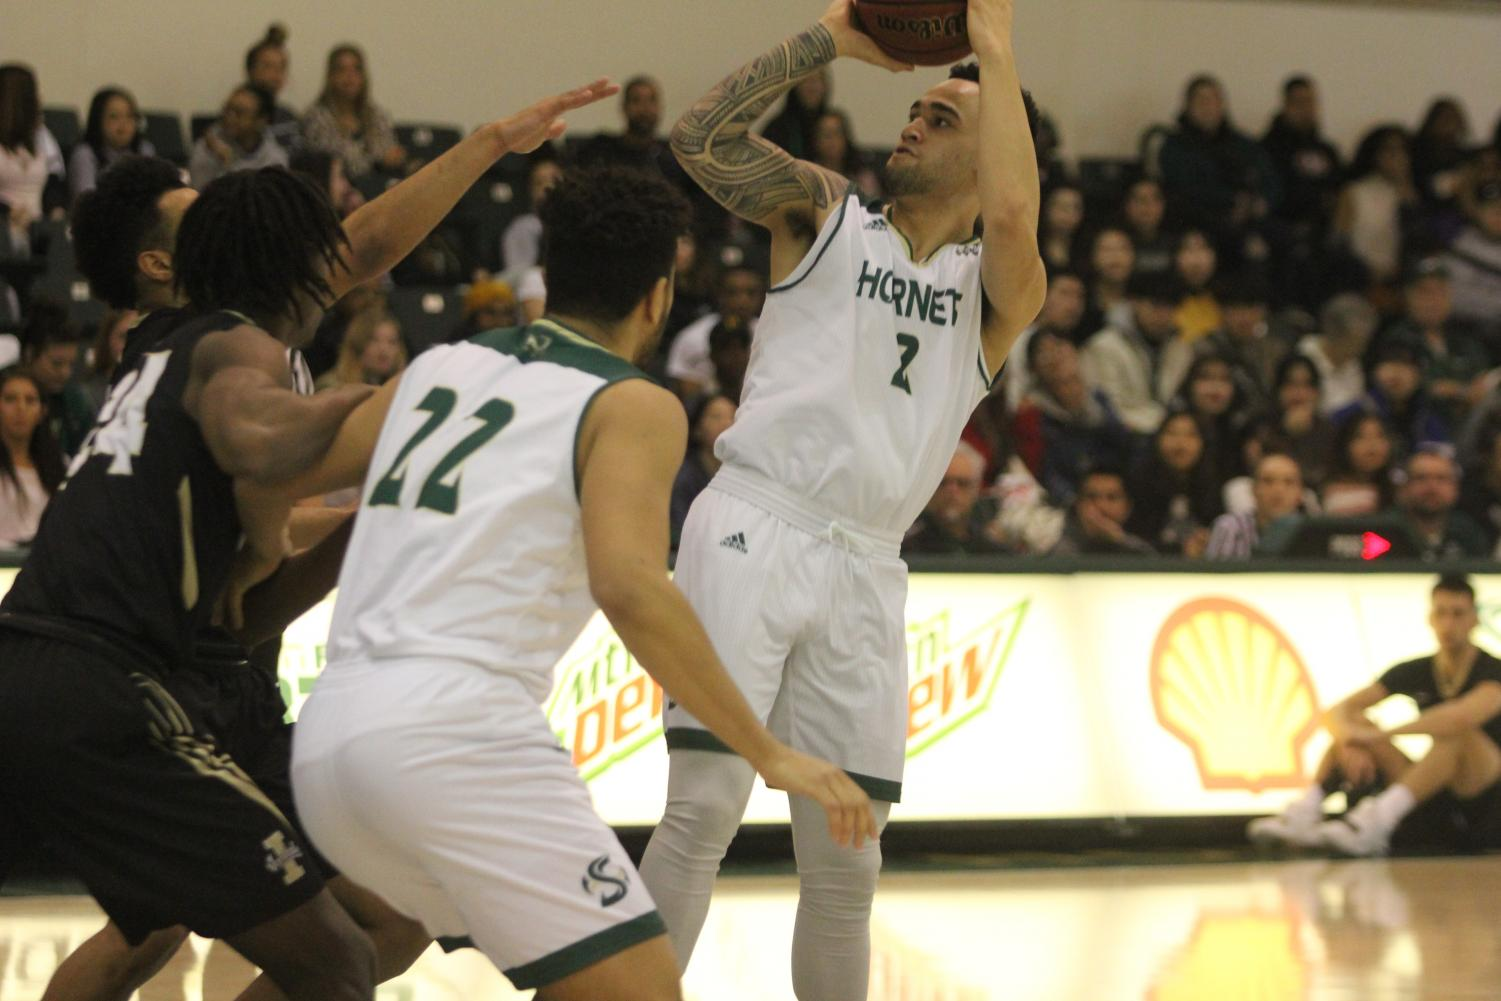 Sac State senior guard Izayah Mauriohooho-Le'afa shoots in the first half of the Hornets 69-48 win against University of Idaho on Jan. 24 at the Nest. The senior currently leads the team in 3-point shot attempts and makes.